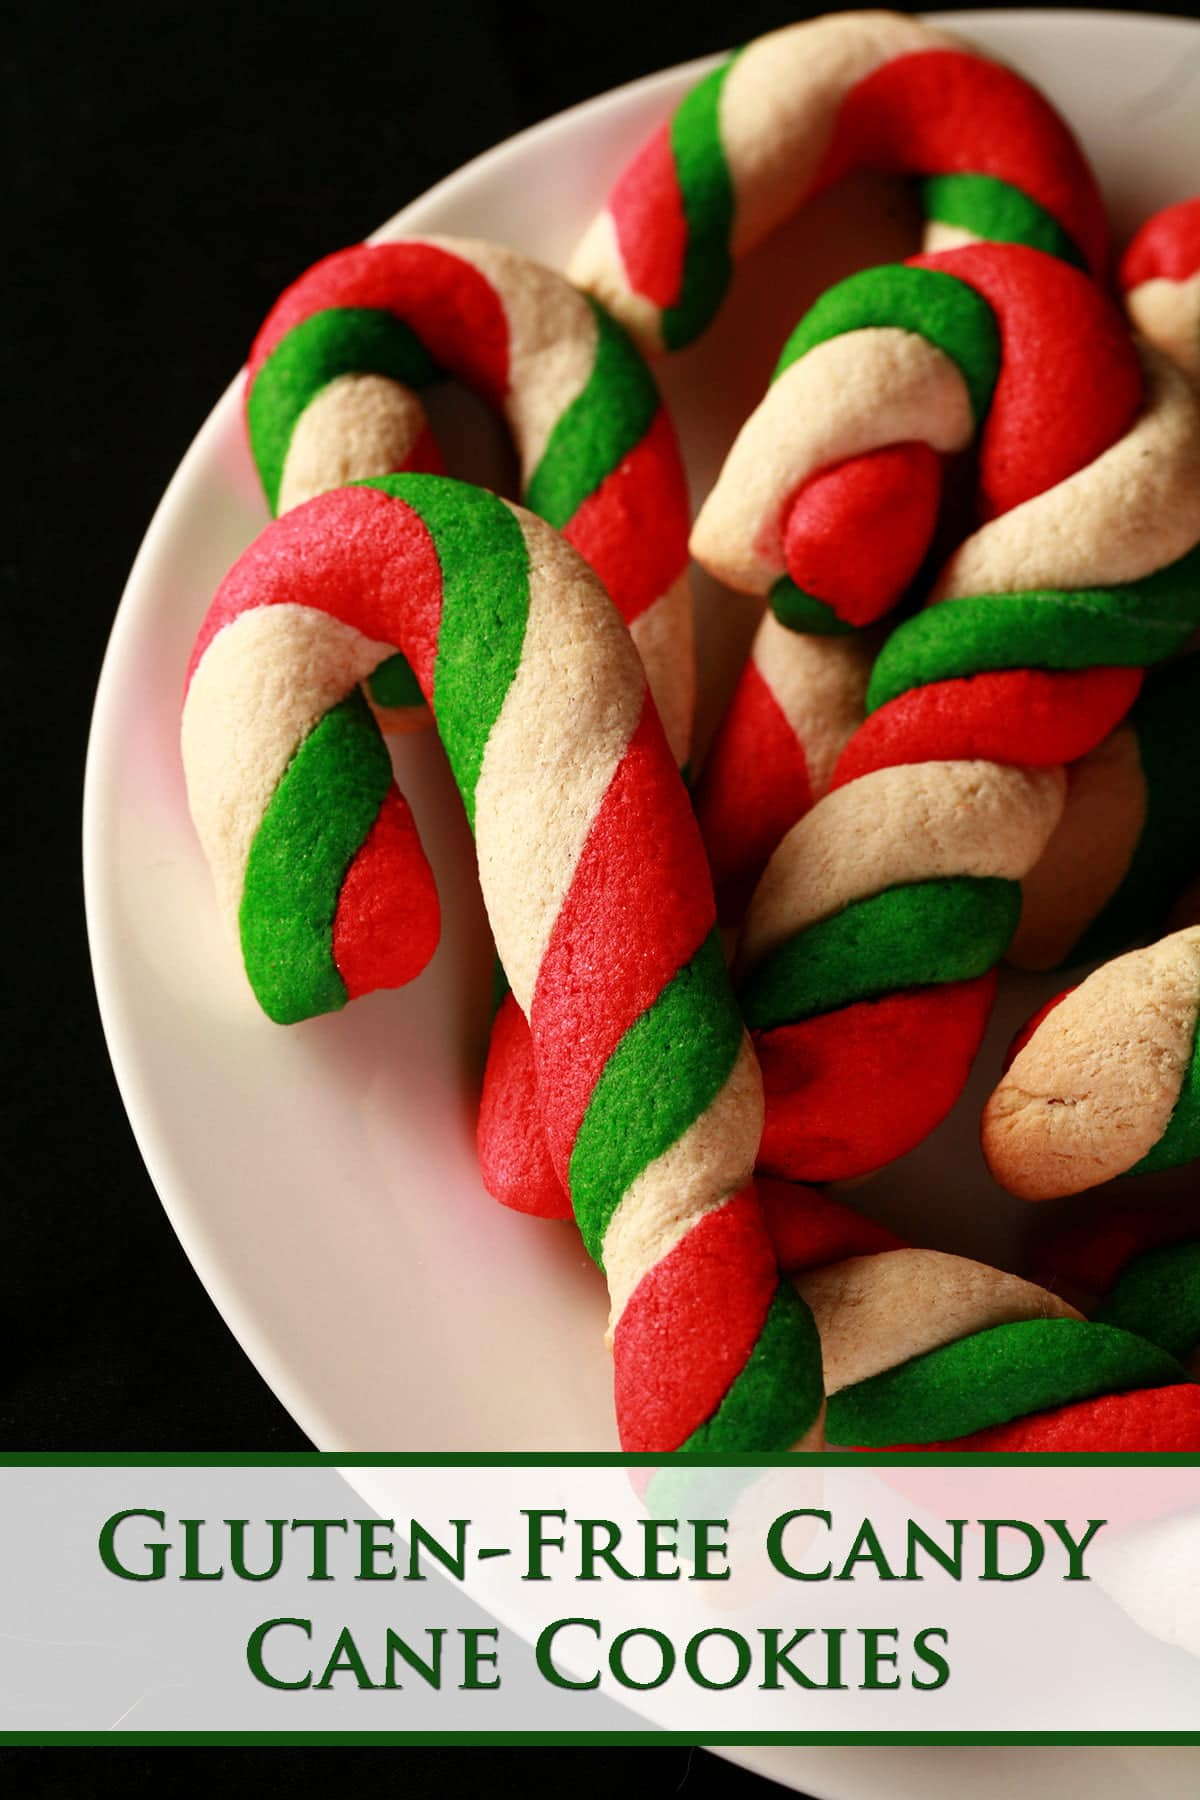 Gluten-Free Candy Cane cookies - candy cane shaped cookies, made from lengths of red, green, and white twisted dough - on a plate.